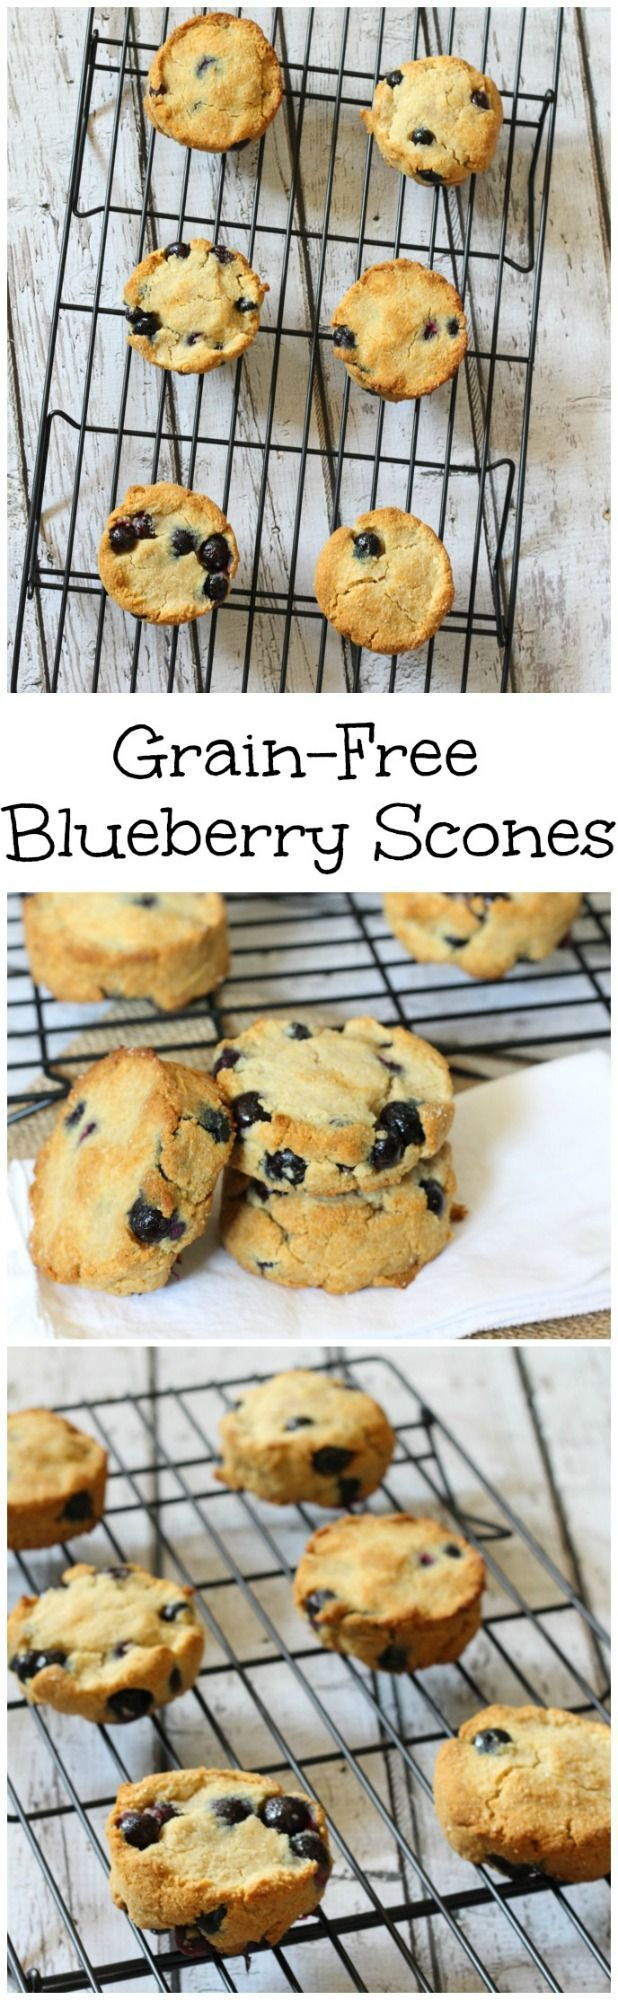 This grain free blueberry scones recipe (also paleo) is super easy to make and it will become your new go-to recipe!